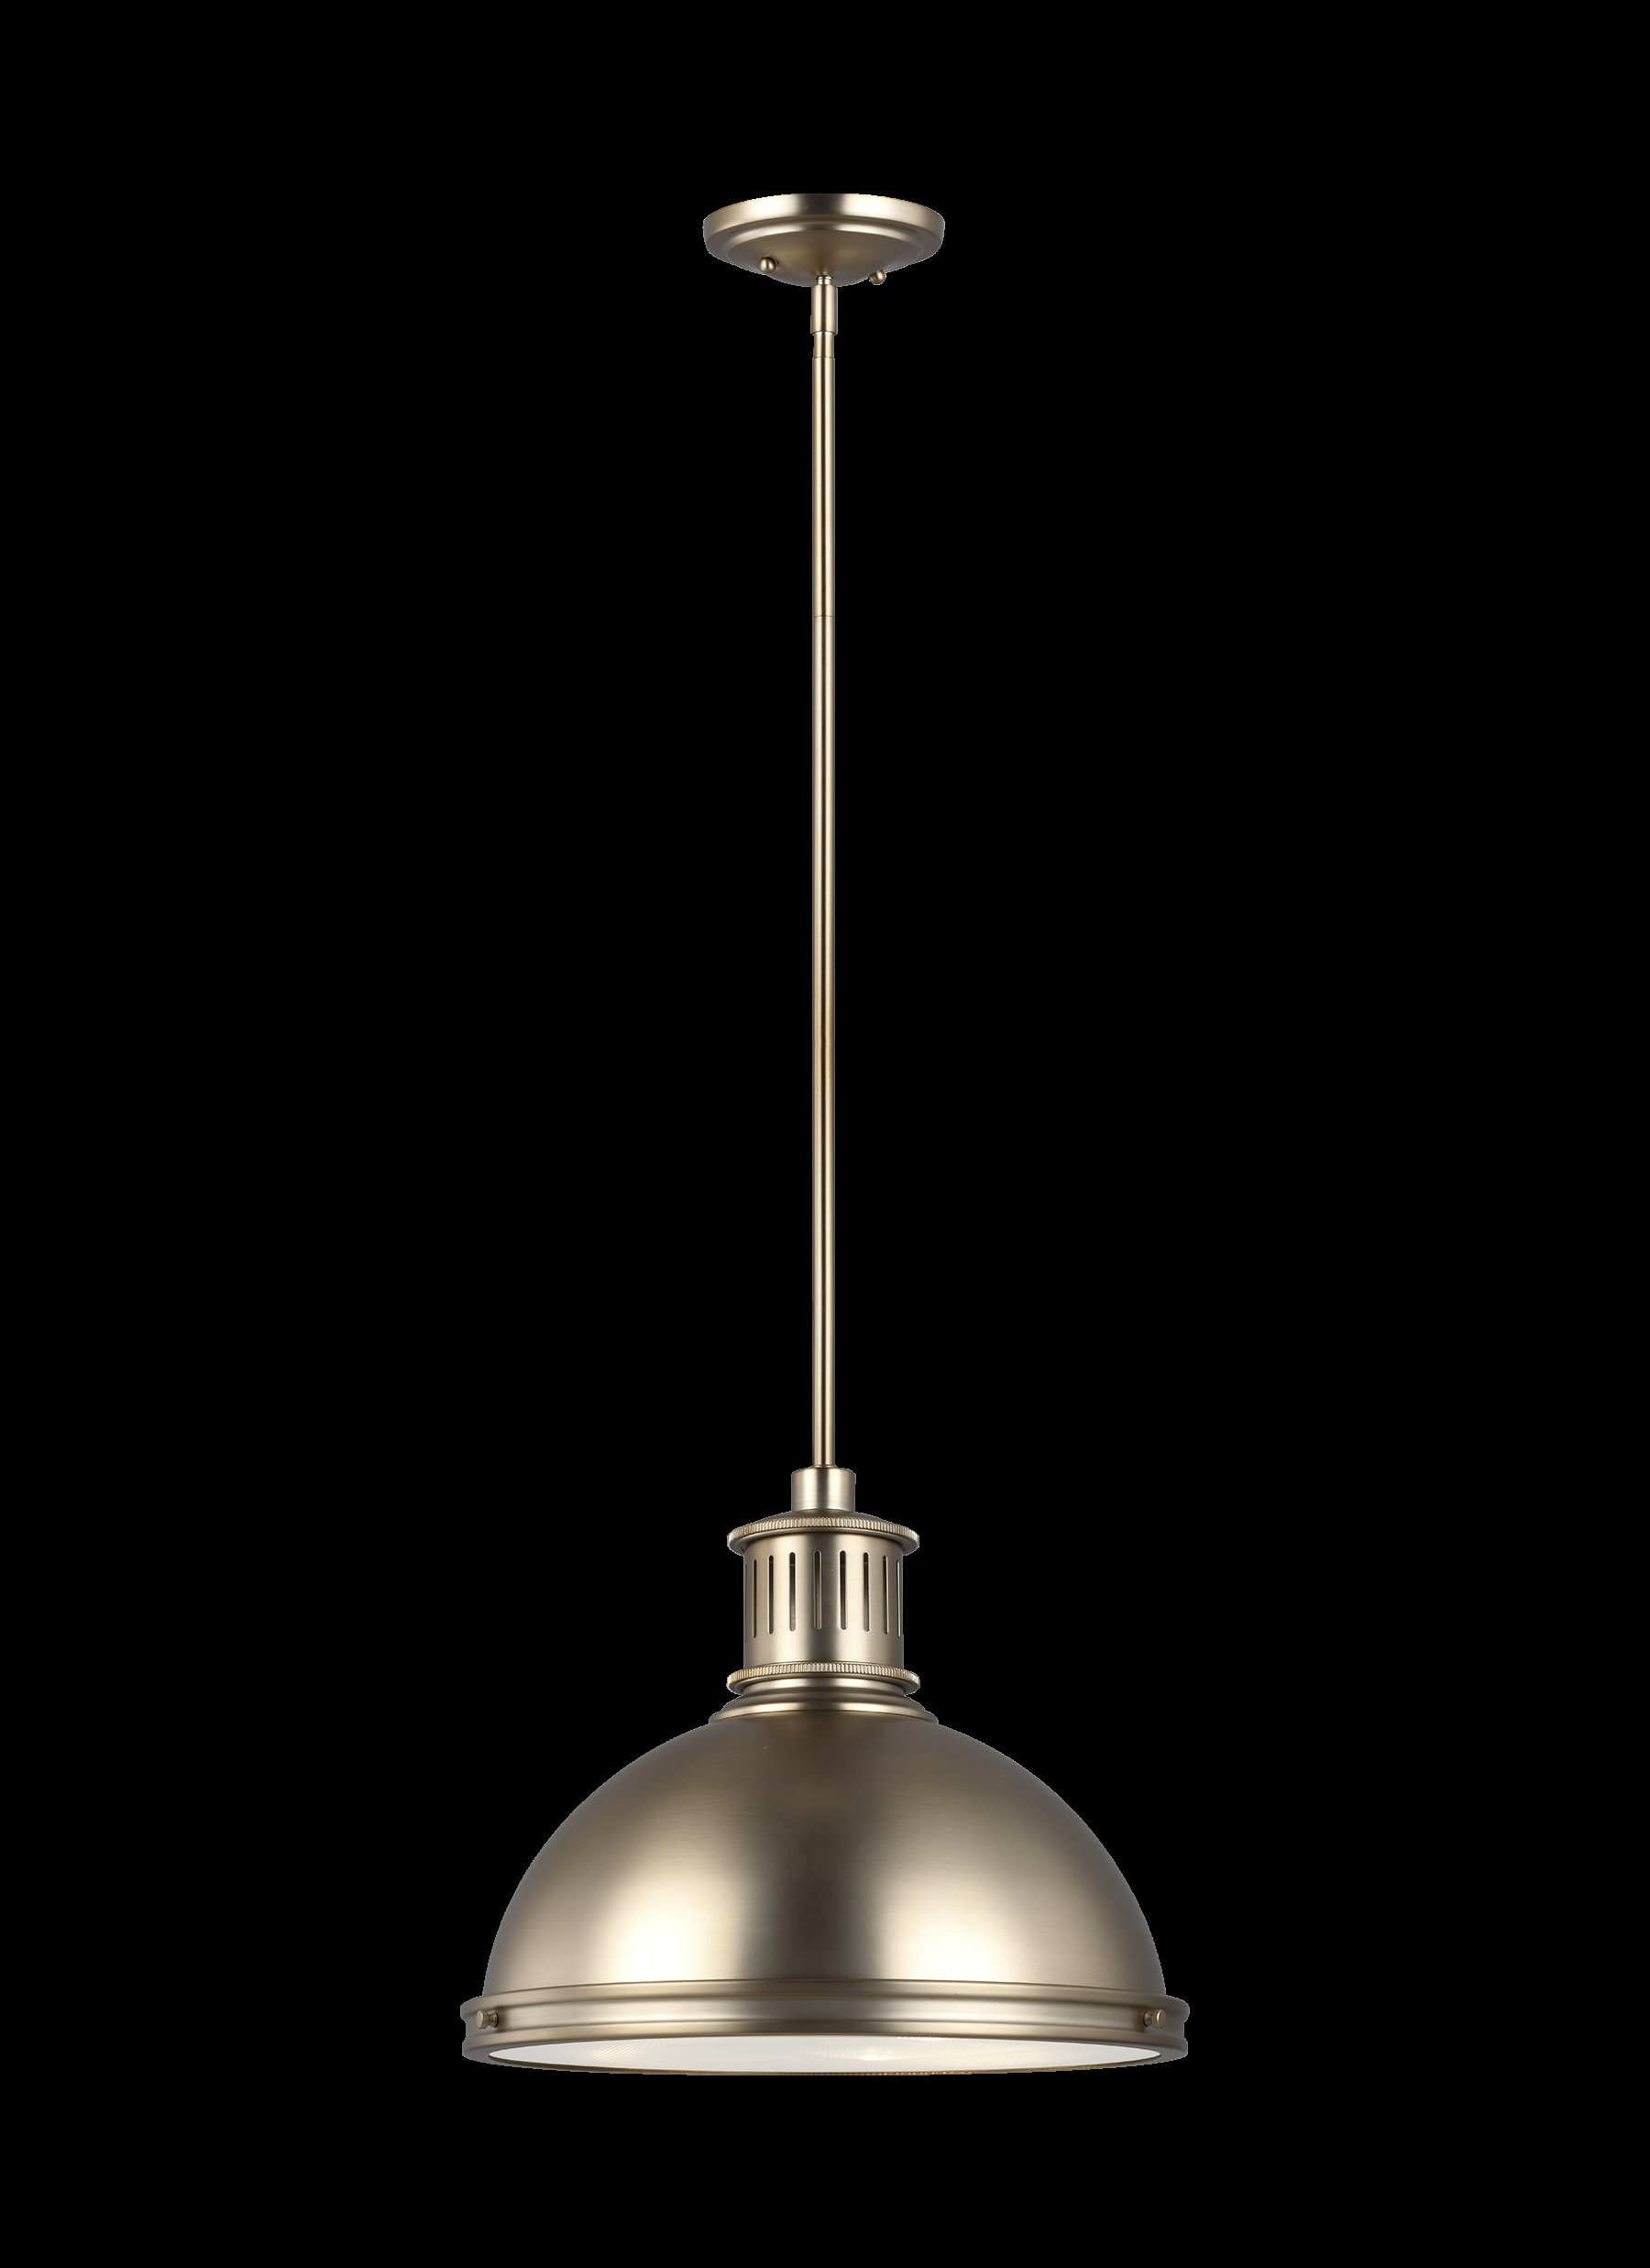 Amara 3 Light Dome Pendants Within 2020 Amara 3 Light Dome Pendant (View 5 of 20)